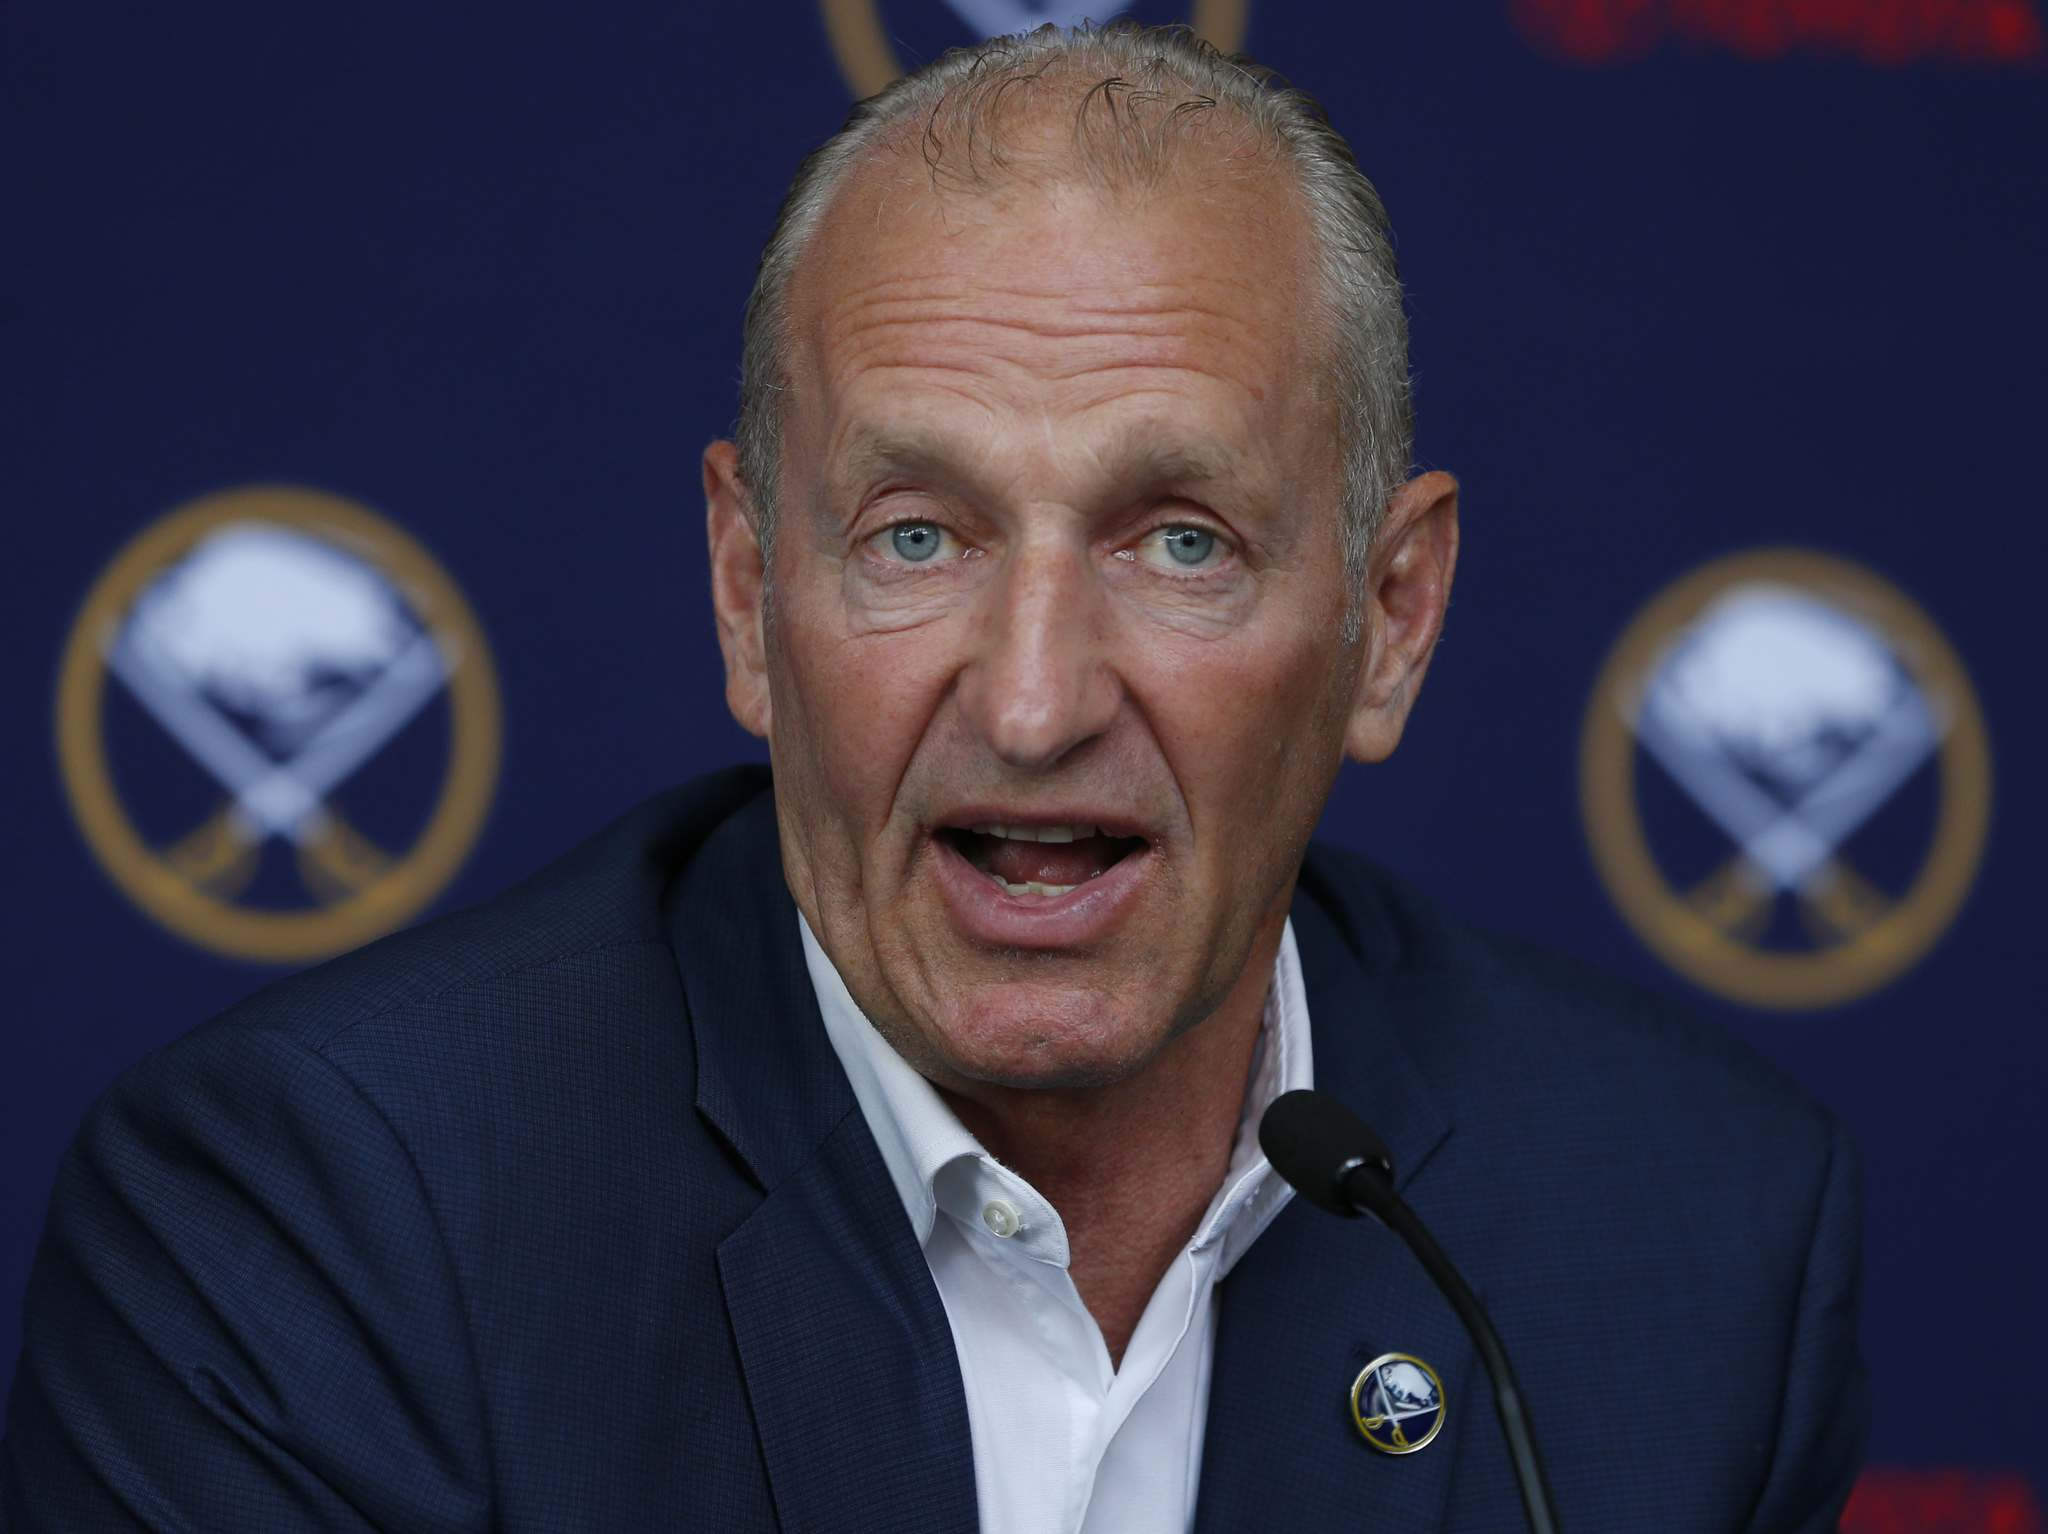 Buffalo Sabres head coach Ralph Krueger addresses the media during an NHL hockey introductory press conference Wednesday, June 5, 2019, in Buffalo N.Y. (AP Photo/Jeffrey T. Barnes)</p>